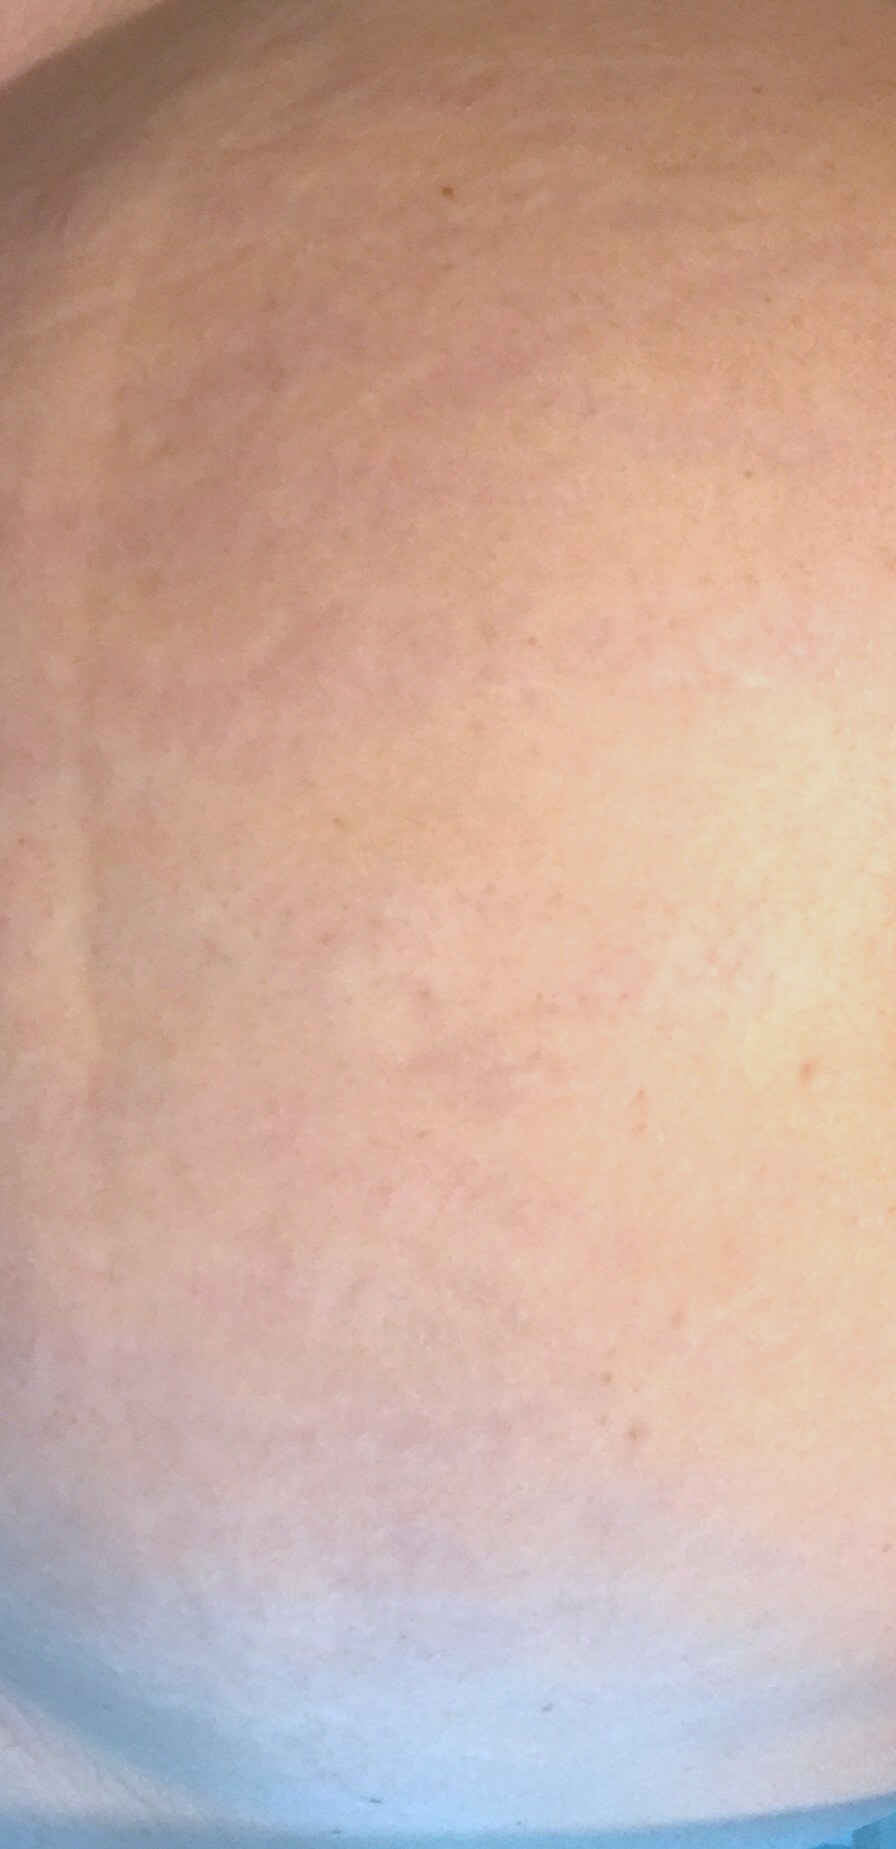 MicroNeedling of Stretch Marks Stretch Marks After MicroPen